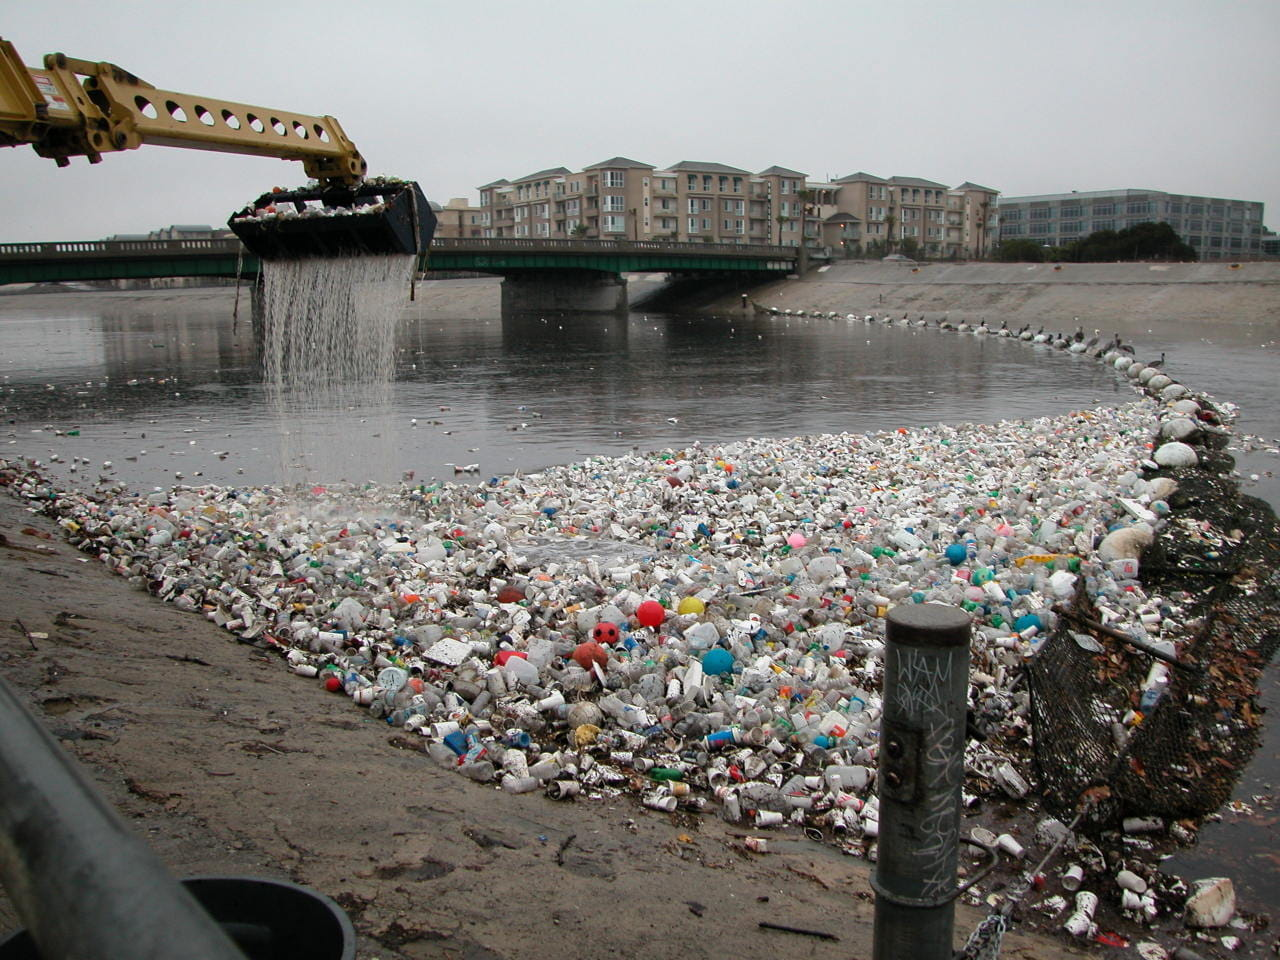 Plastic collects at the mouth of the Los Angeles River